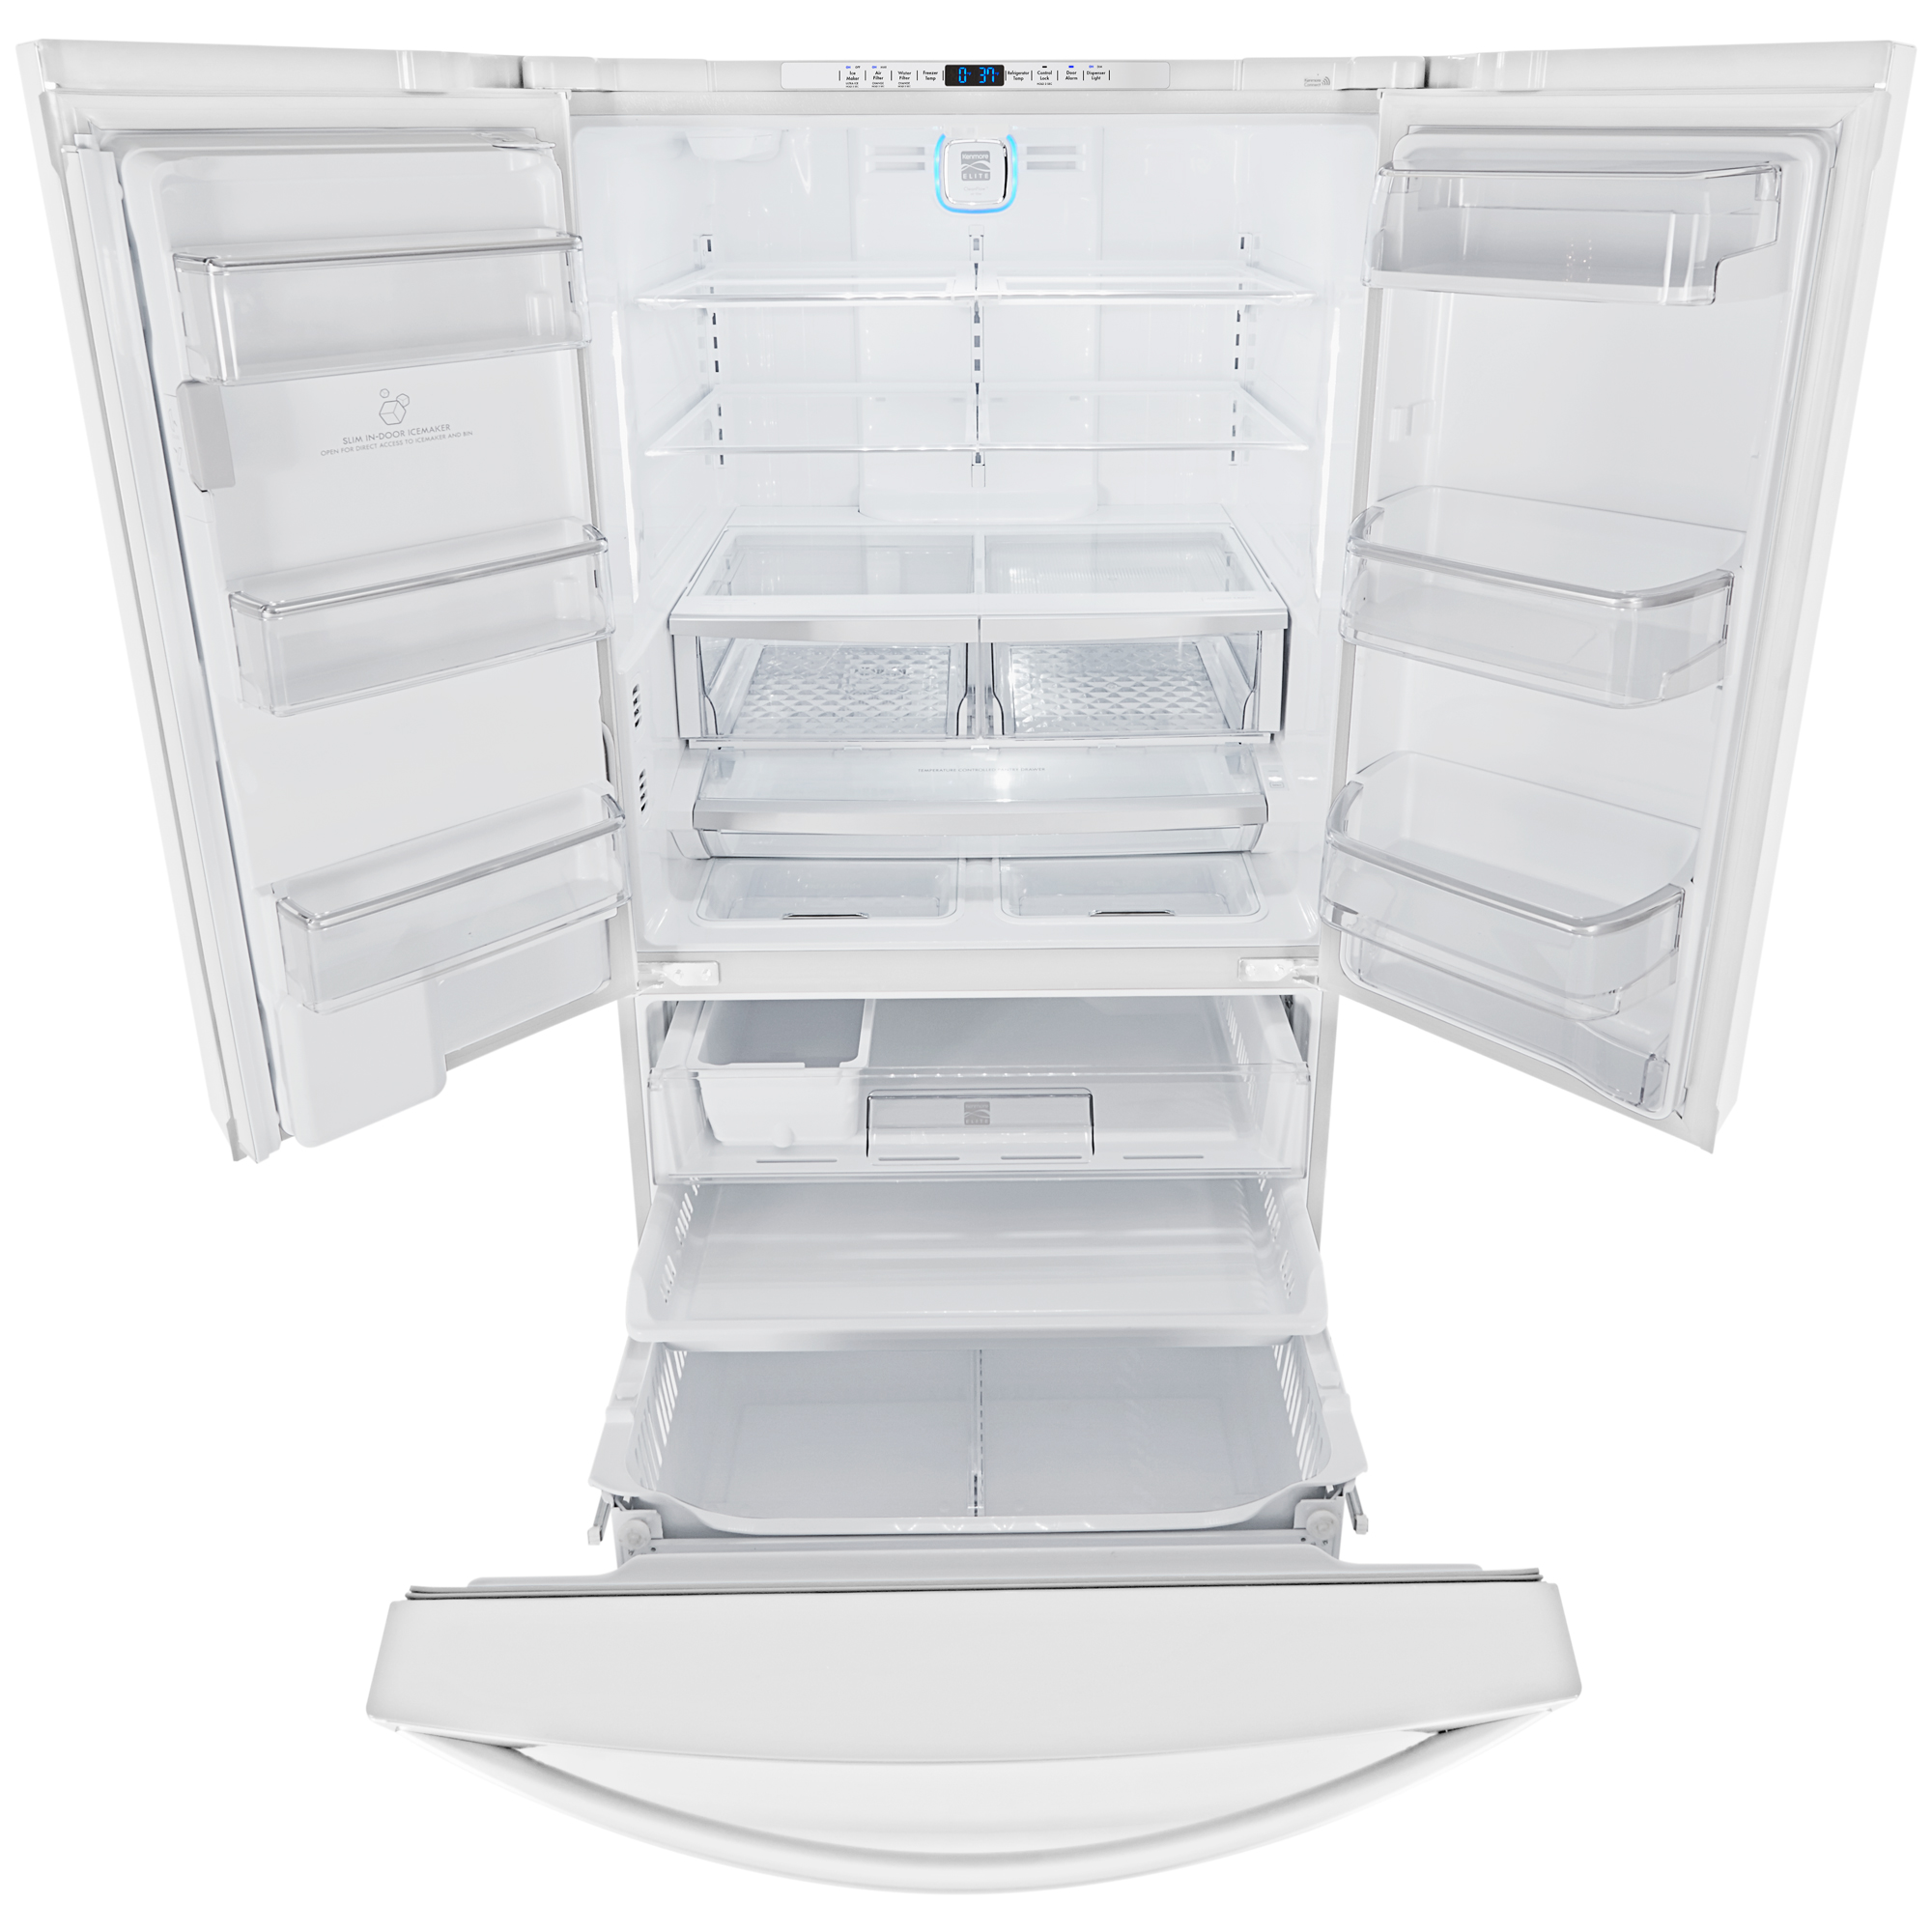 Kenmore Elite 74092 31.7 cu.ft. Super Capacity French Door Bottom-Freezer Refrigerator